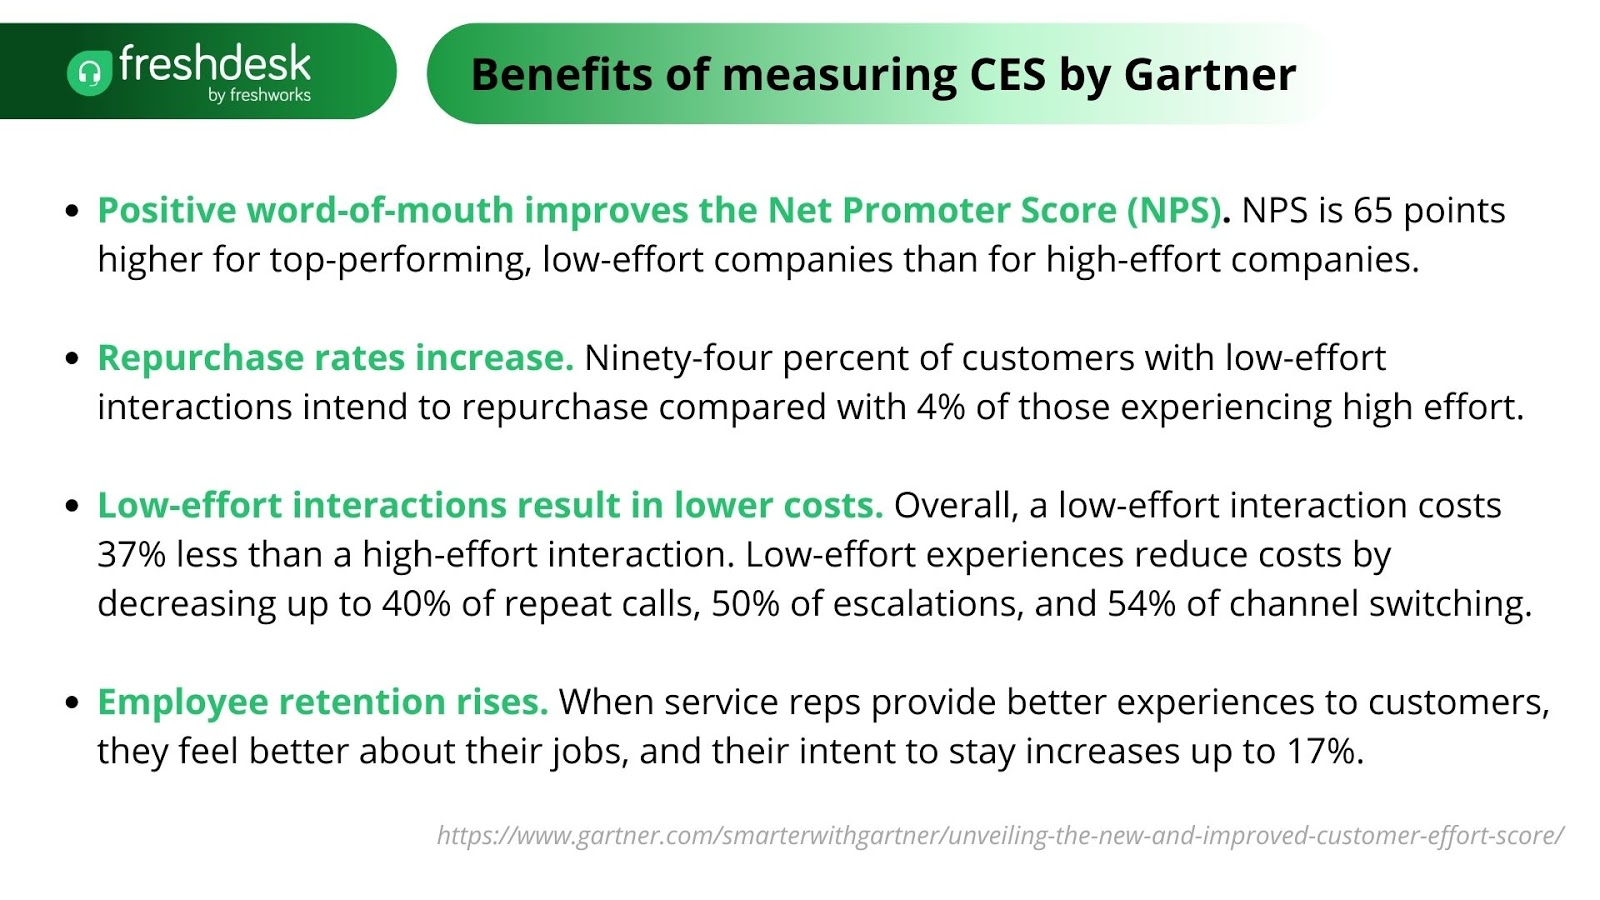 Image with the benefits of measuring CES by Gartner Research